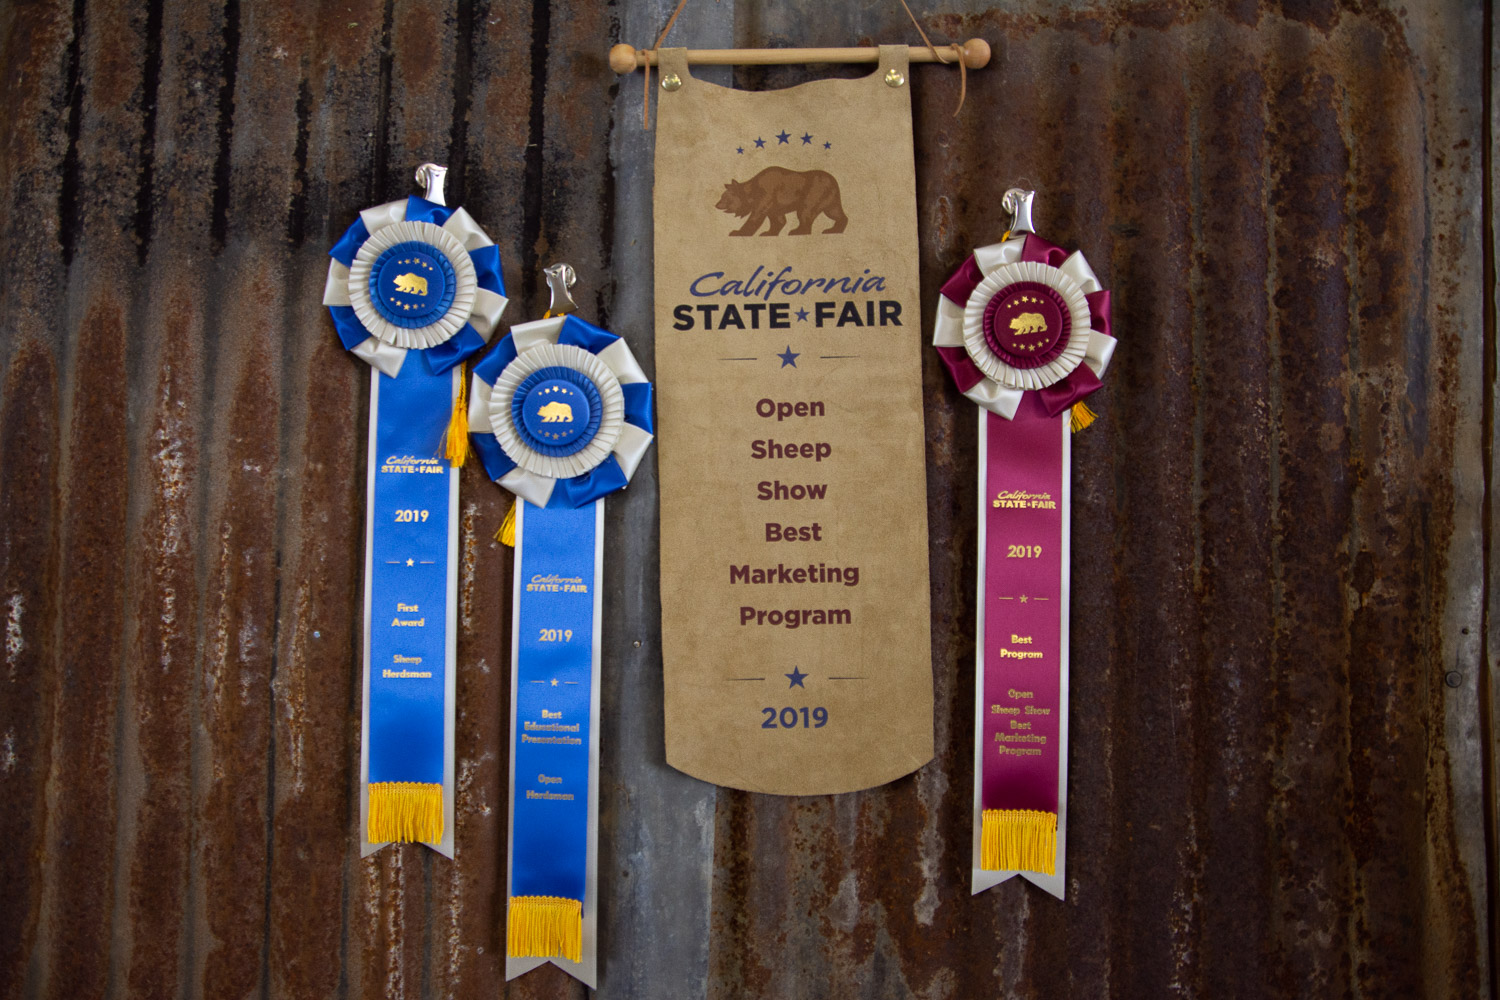 Best Marketing Program at California State Fair.